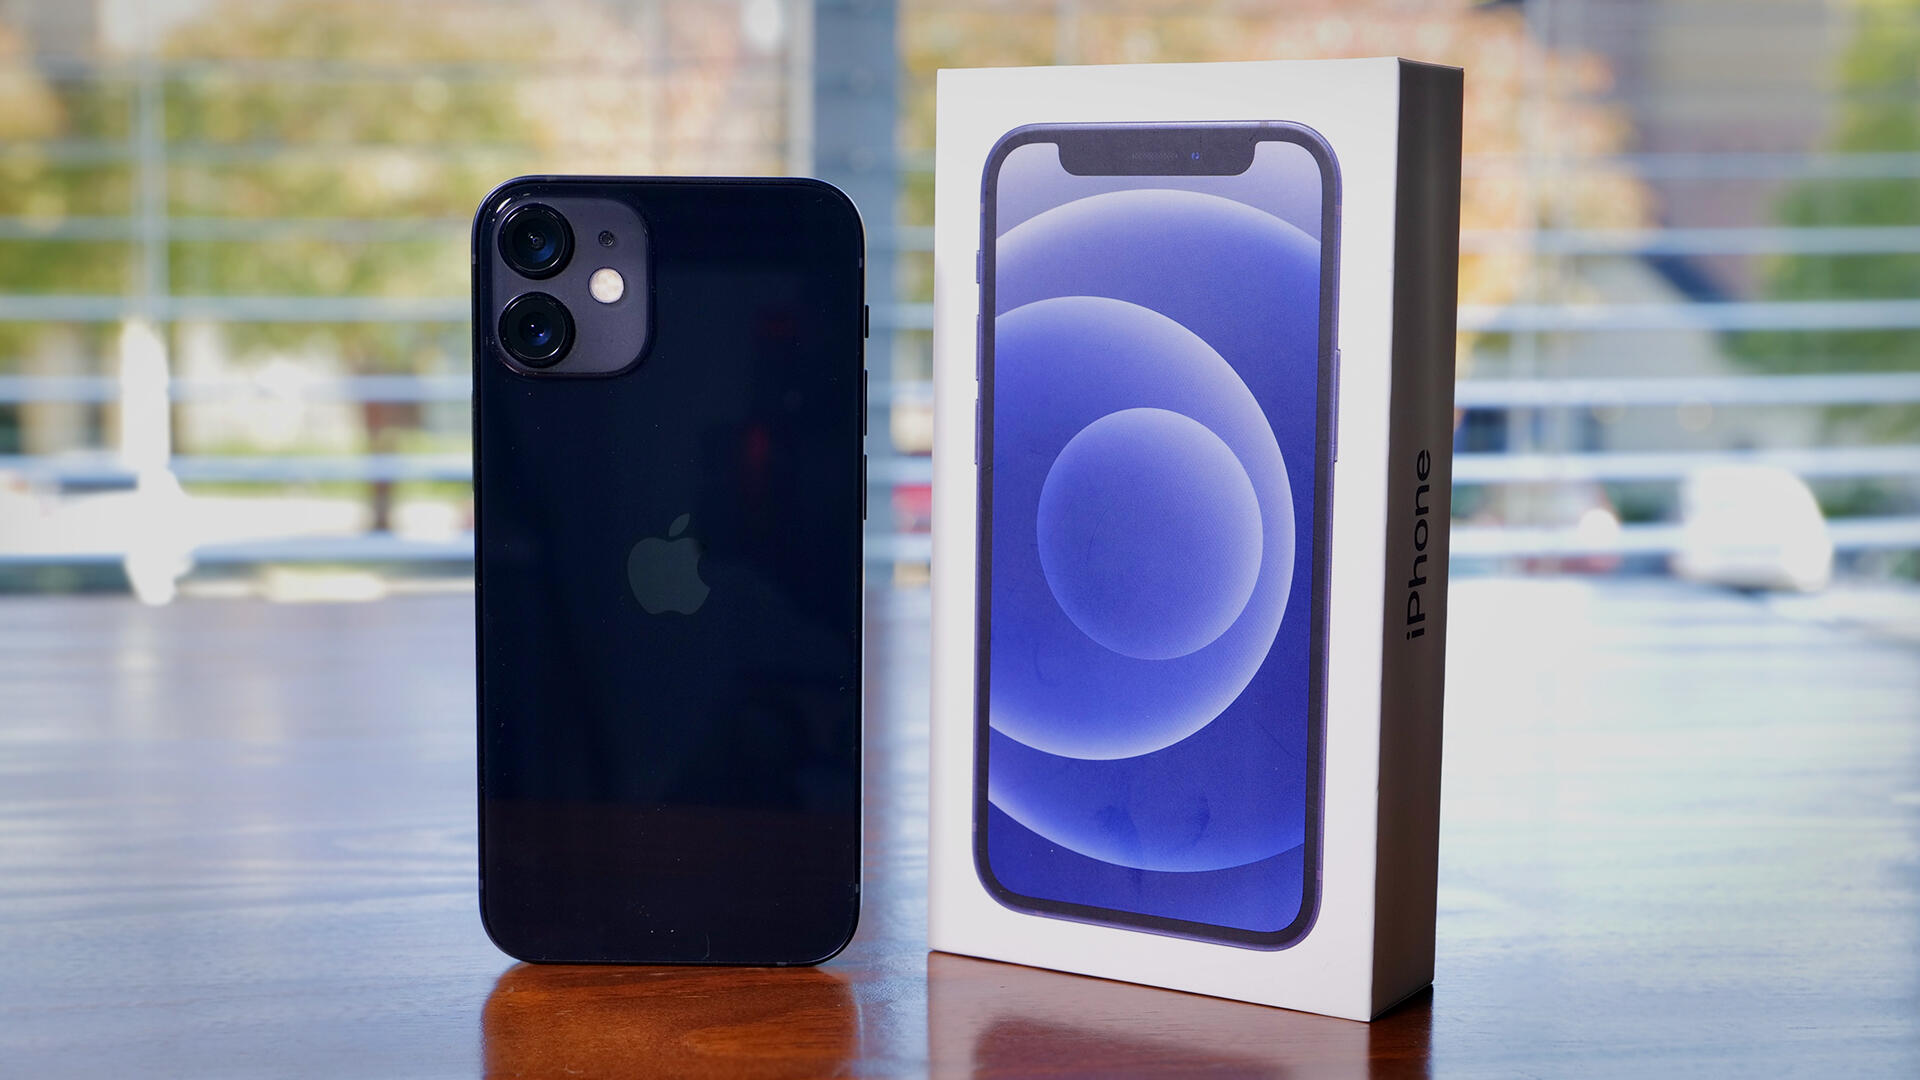 Video: We unbox the iPhone 12 Mini and size it up with the iPhone 5 and SE